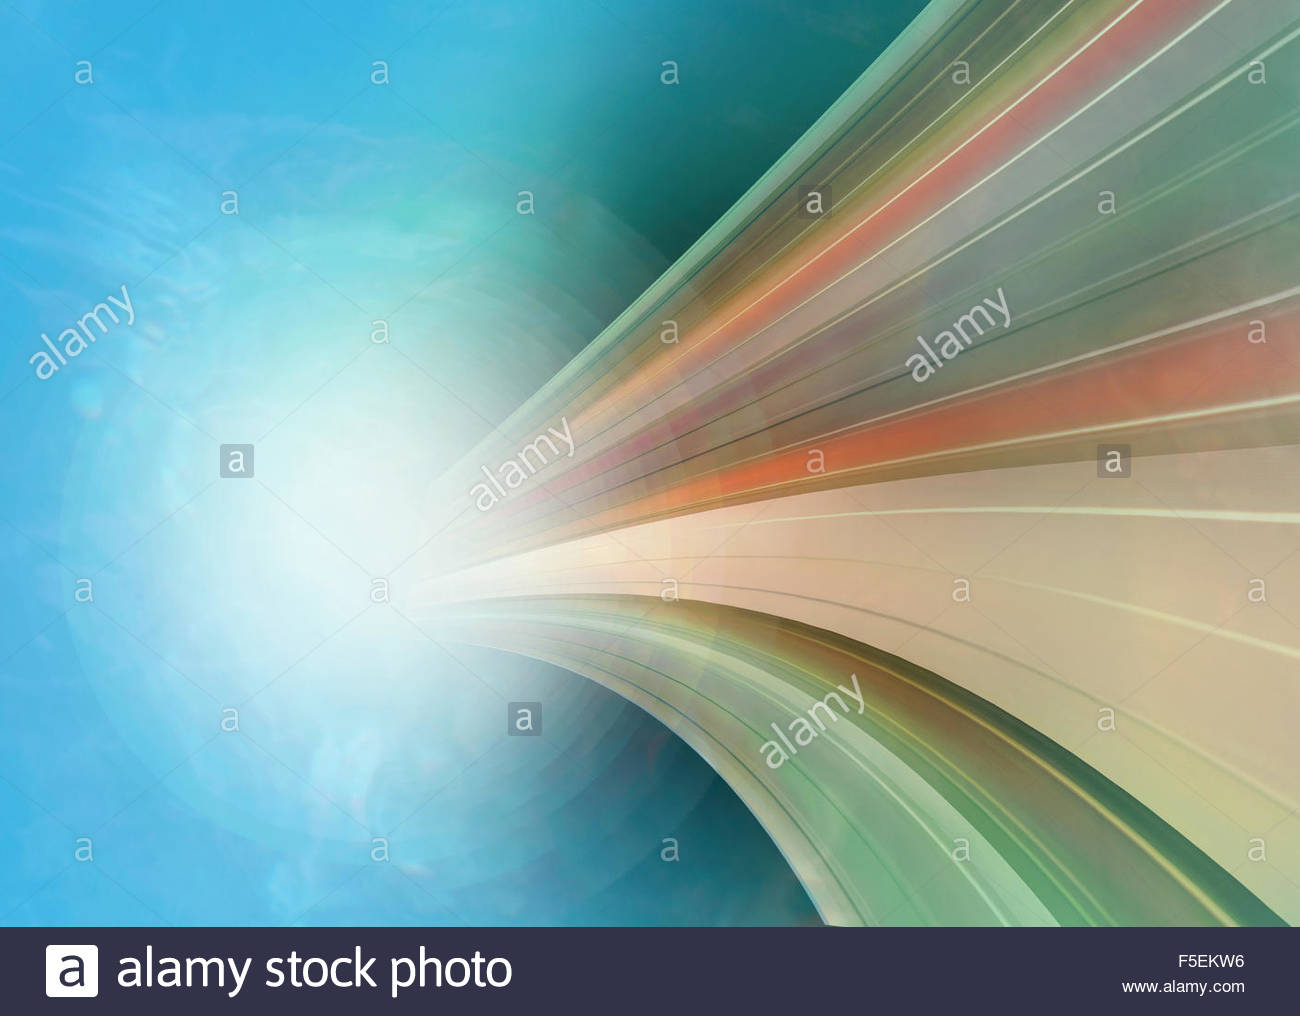 Abstract curved stripe pattern emerging from glowing light - Stock Image